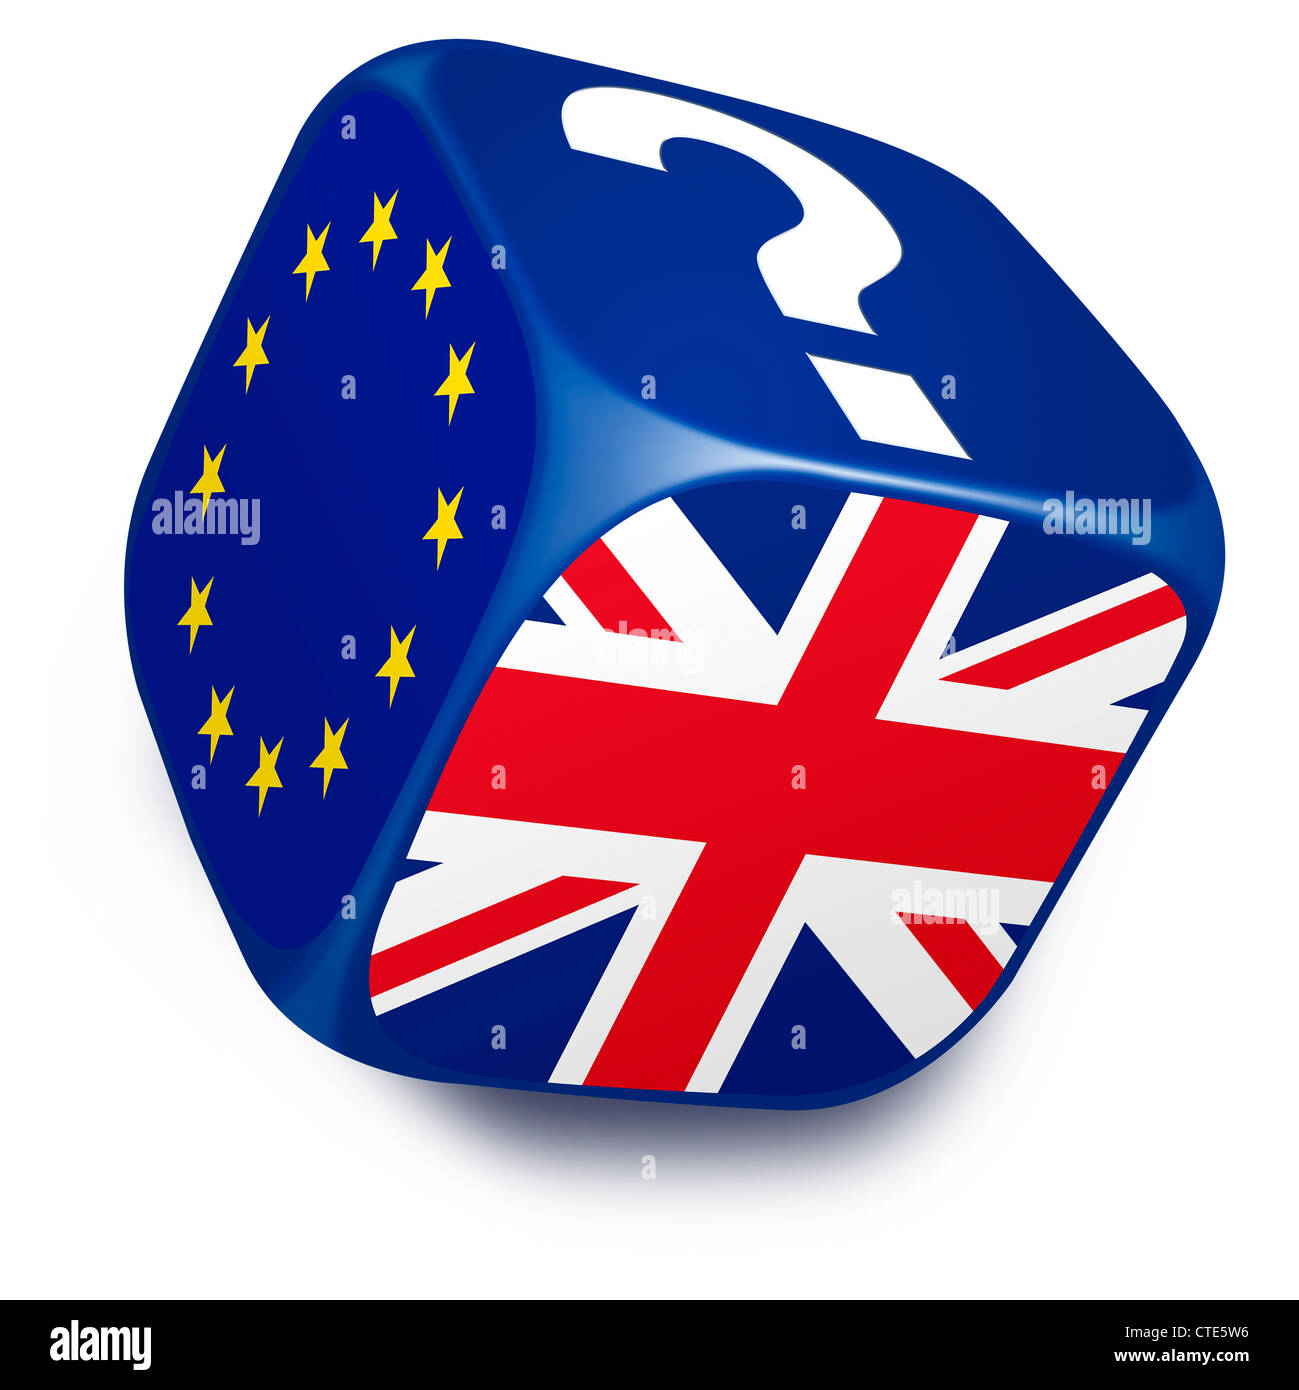 Dice with European Union Flag, UK flag and a question mark on it's sides - Stock Image